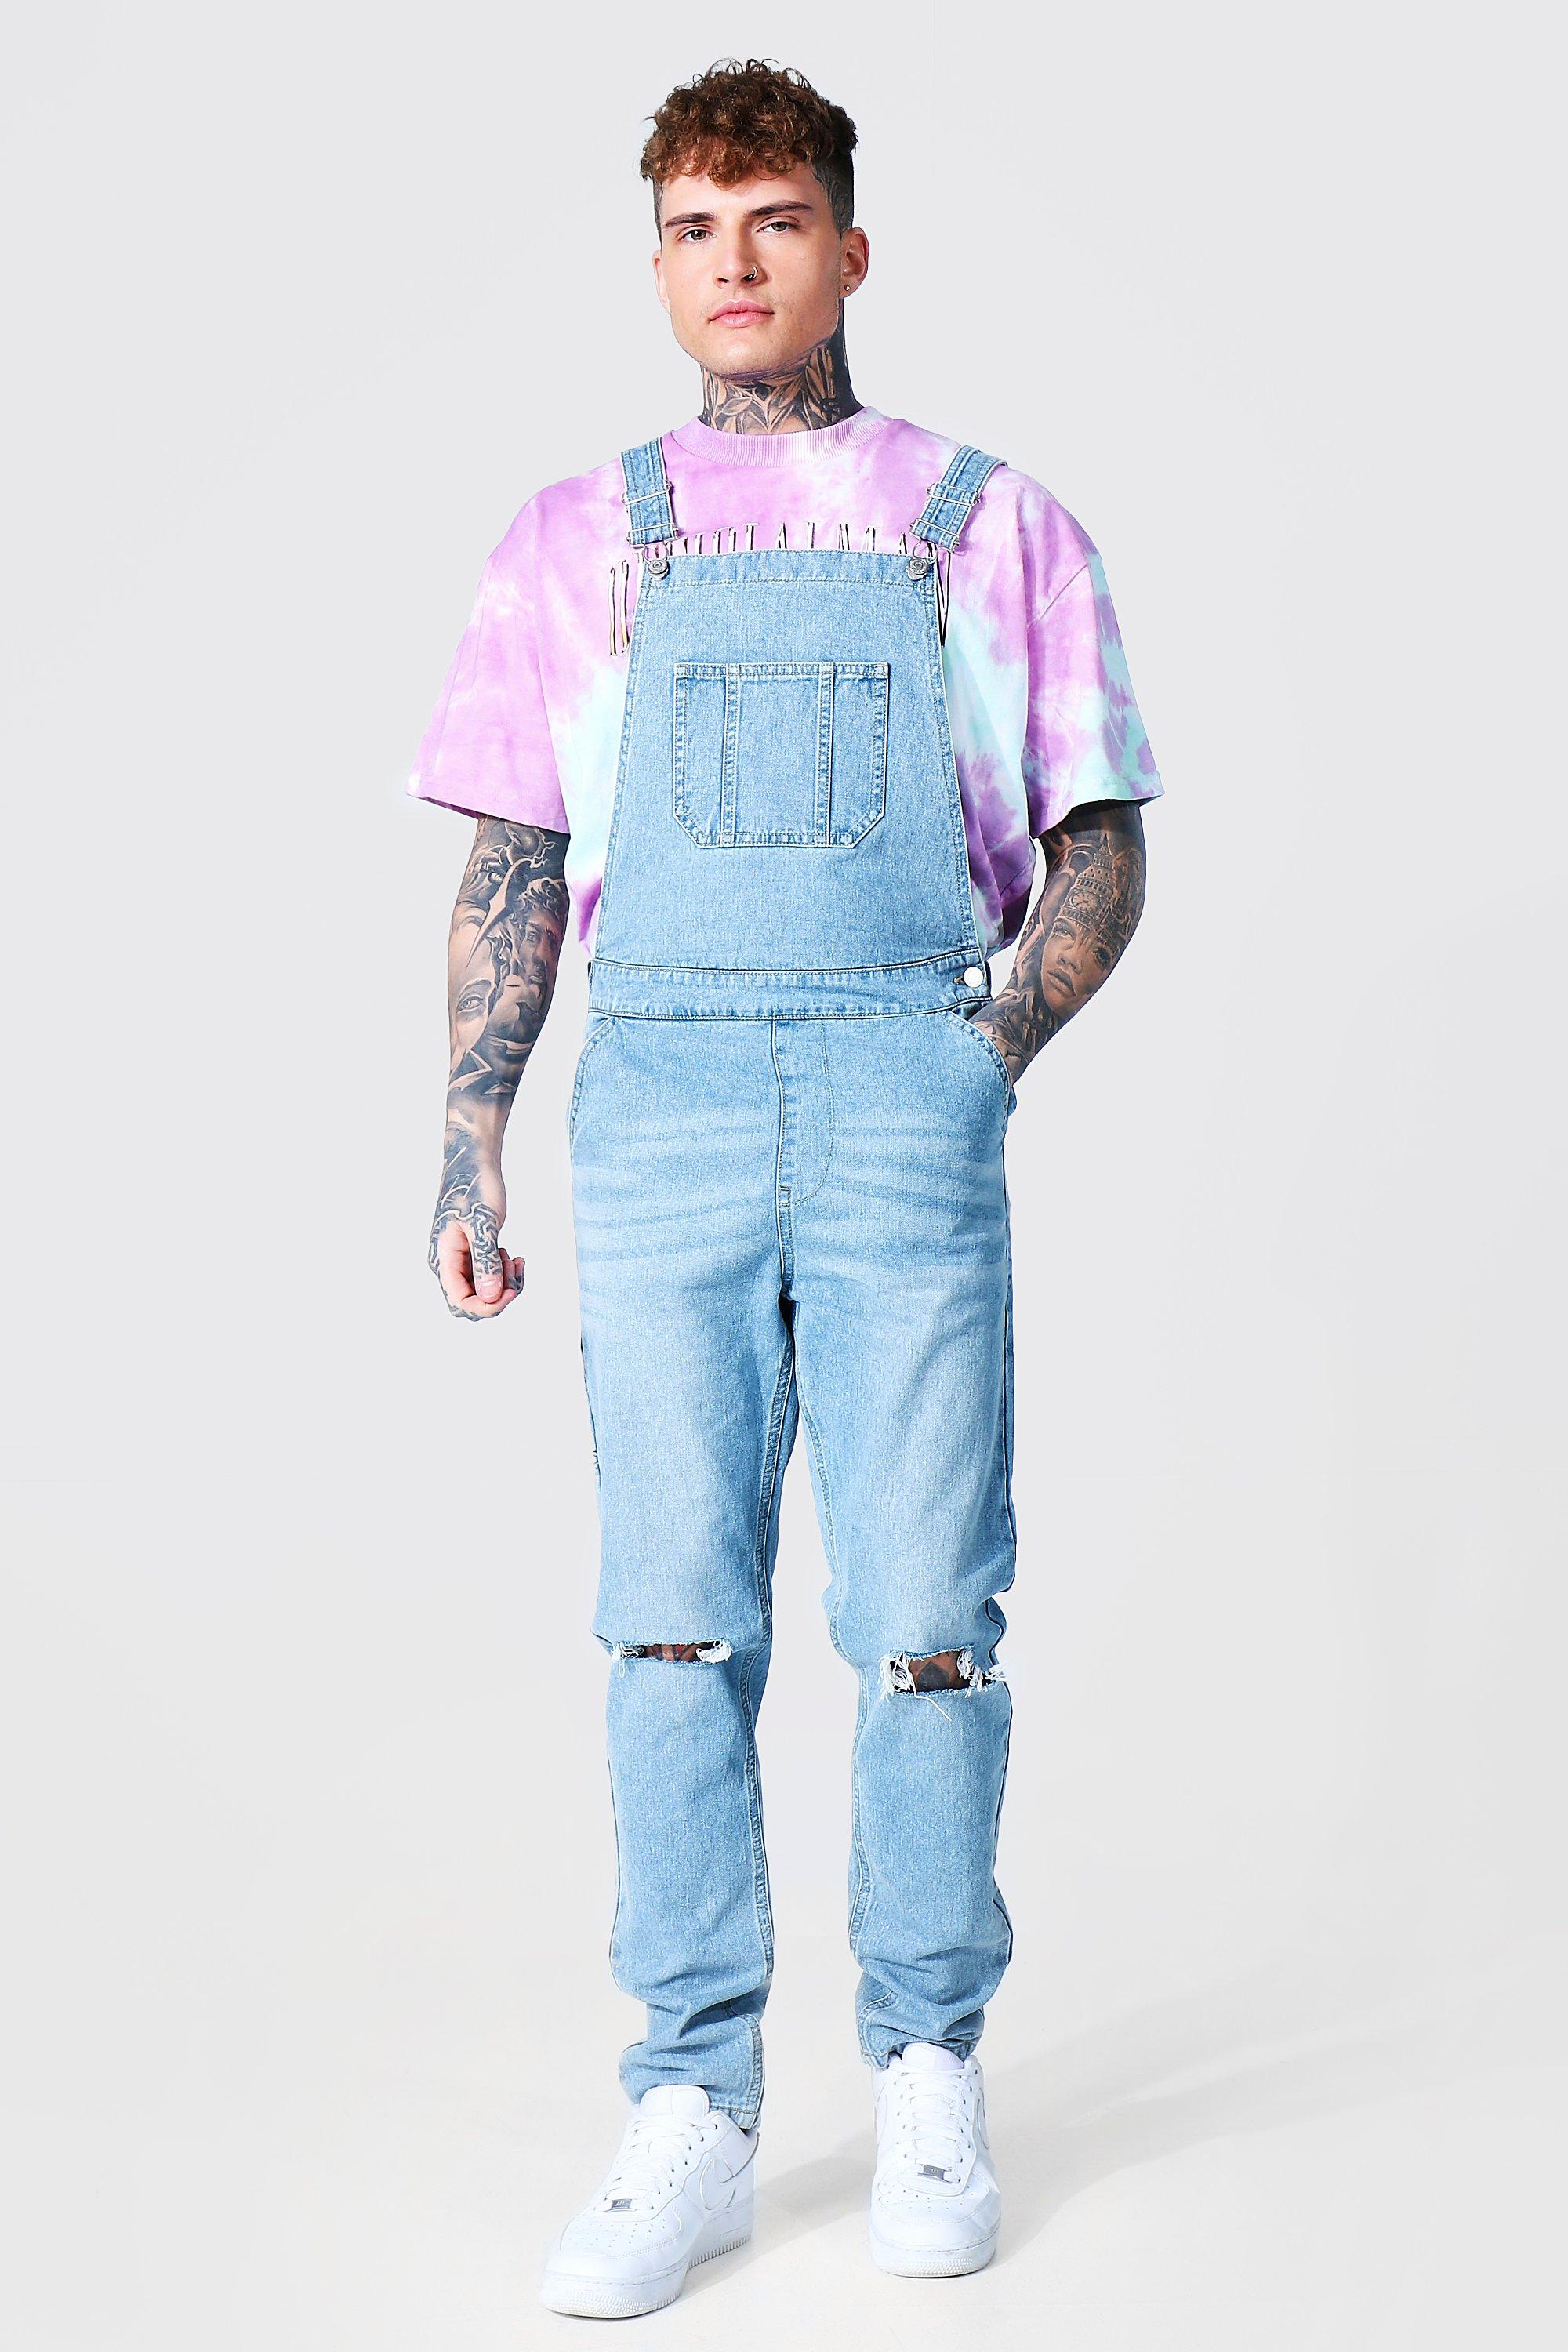 90s Outfits for Guys | Trendy, Party, Cool, Casaul Mens Slim Rigid Busted Knee Long Dungaree - Blue $15.00 AT vintagedancer.com